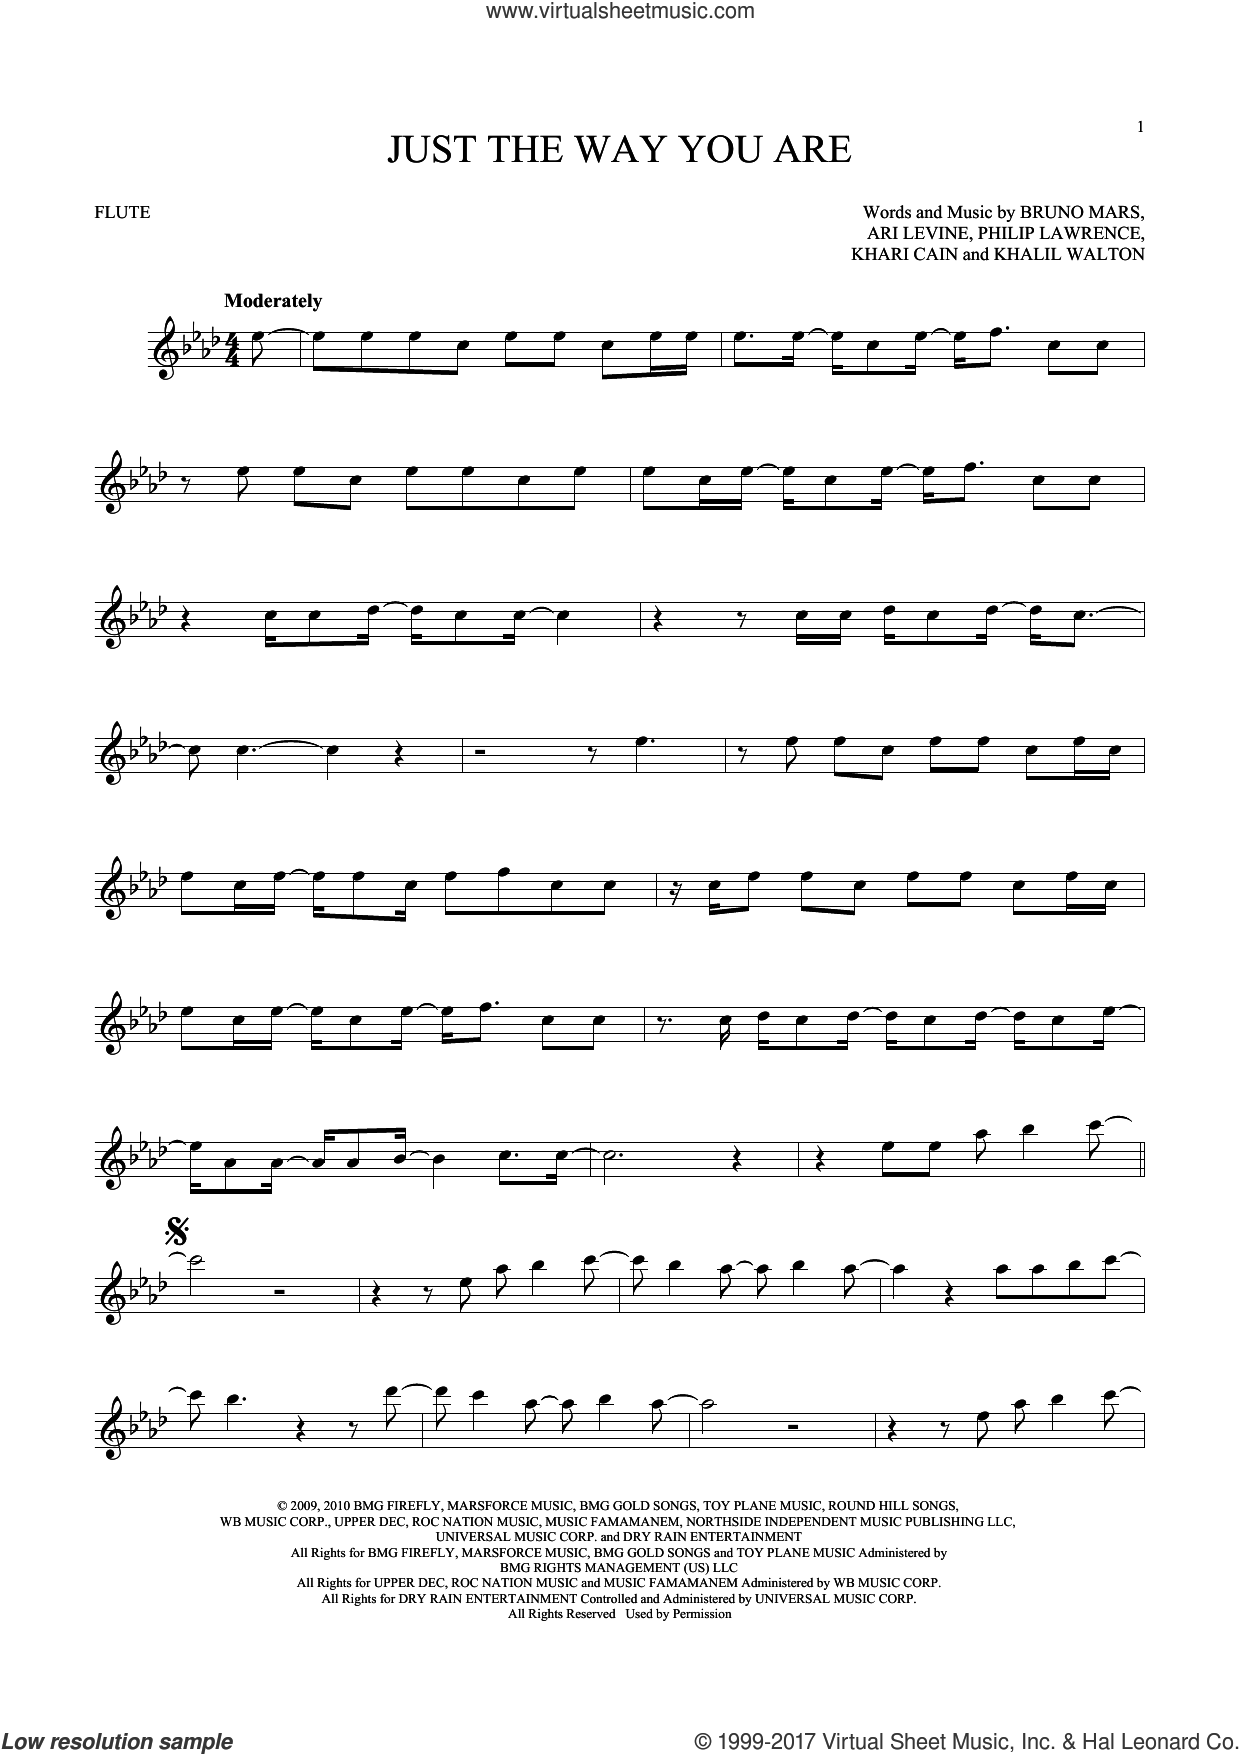 Just The Way You Are sheet music for flute solo by Bruno Mars, Ari Levine, Khalil Walton, Khari Cain and Philip Lawrence, intermediate skill level